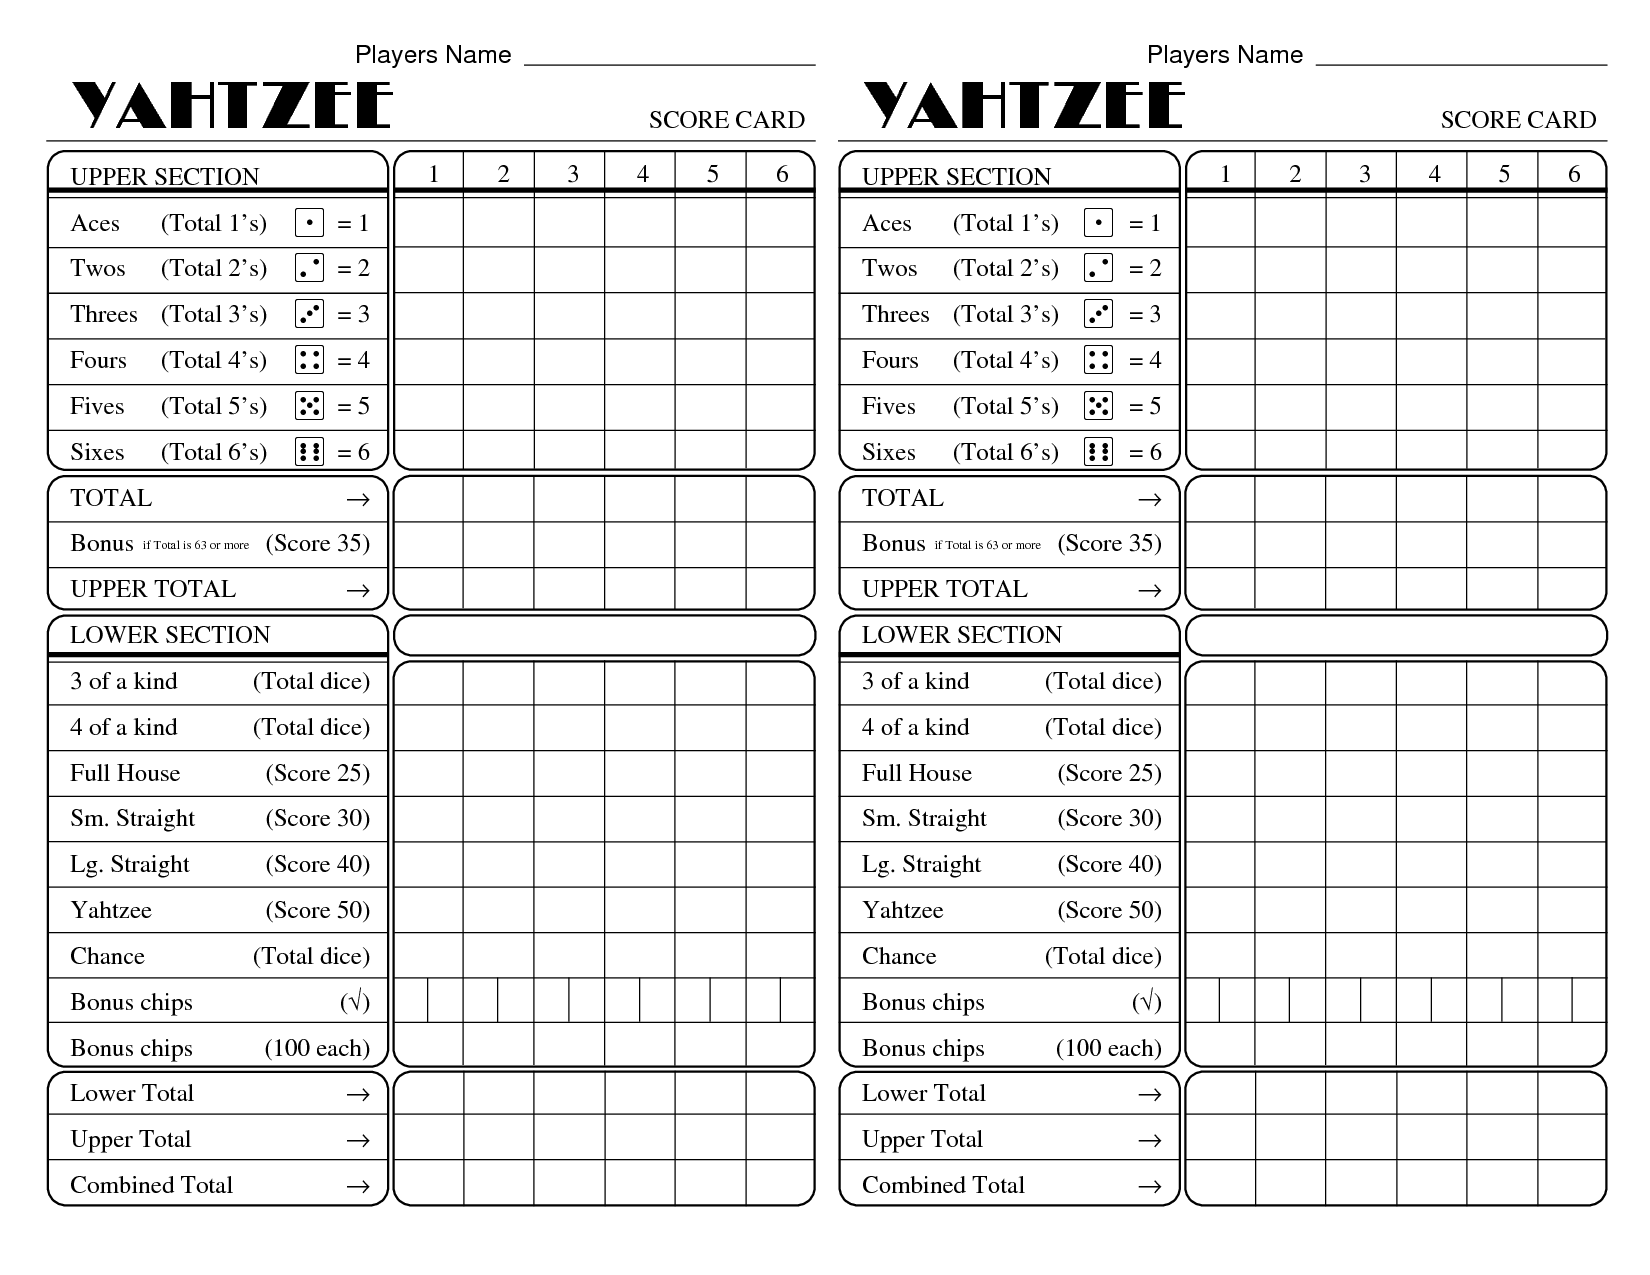 graphic regarding Yahtzee Score Cards Printable called Printable+Yahtzee+Rating+Sheets For The Kiddos Yahtzee